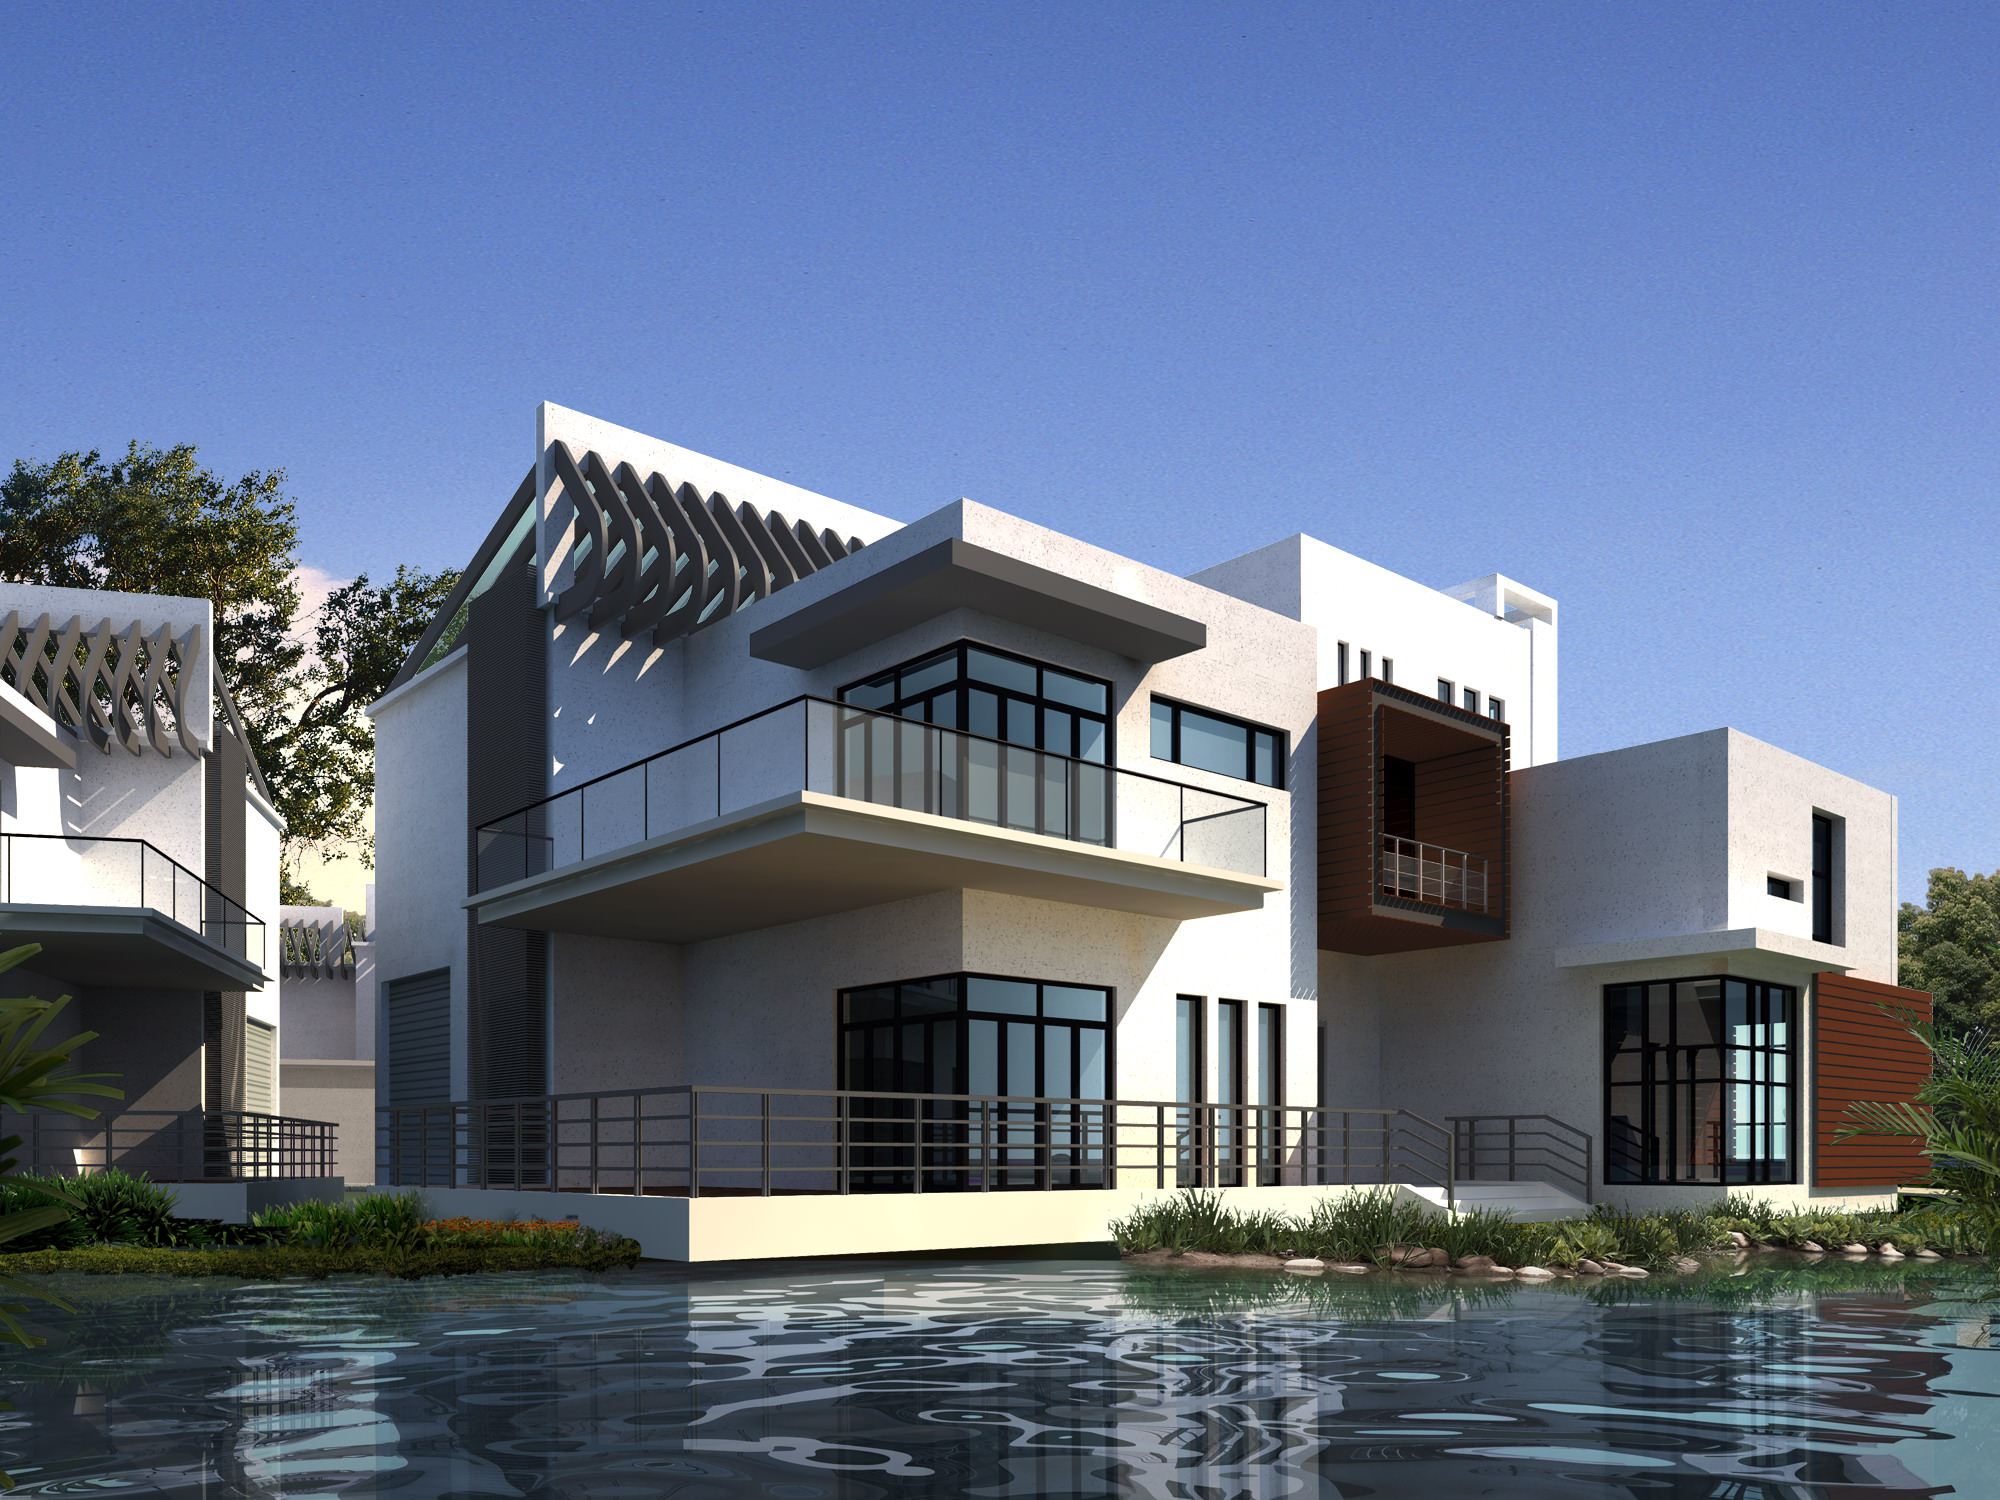 Modern condo by the water 3d model max 1